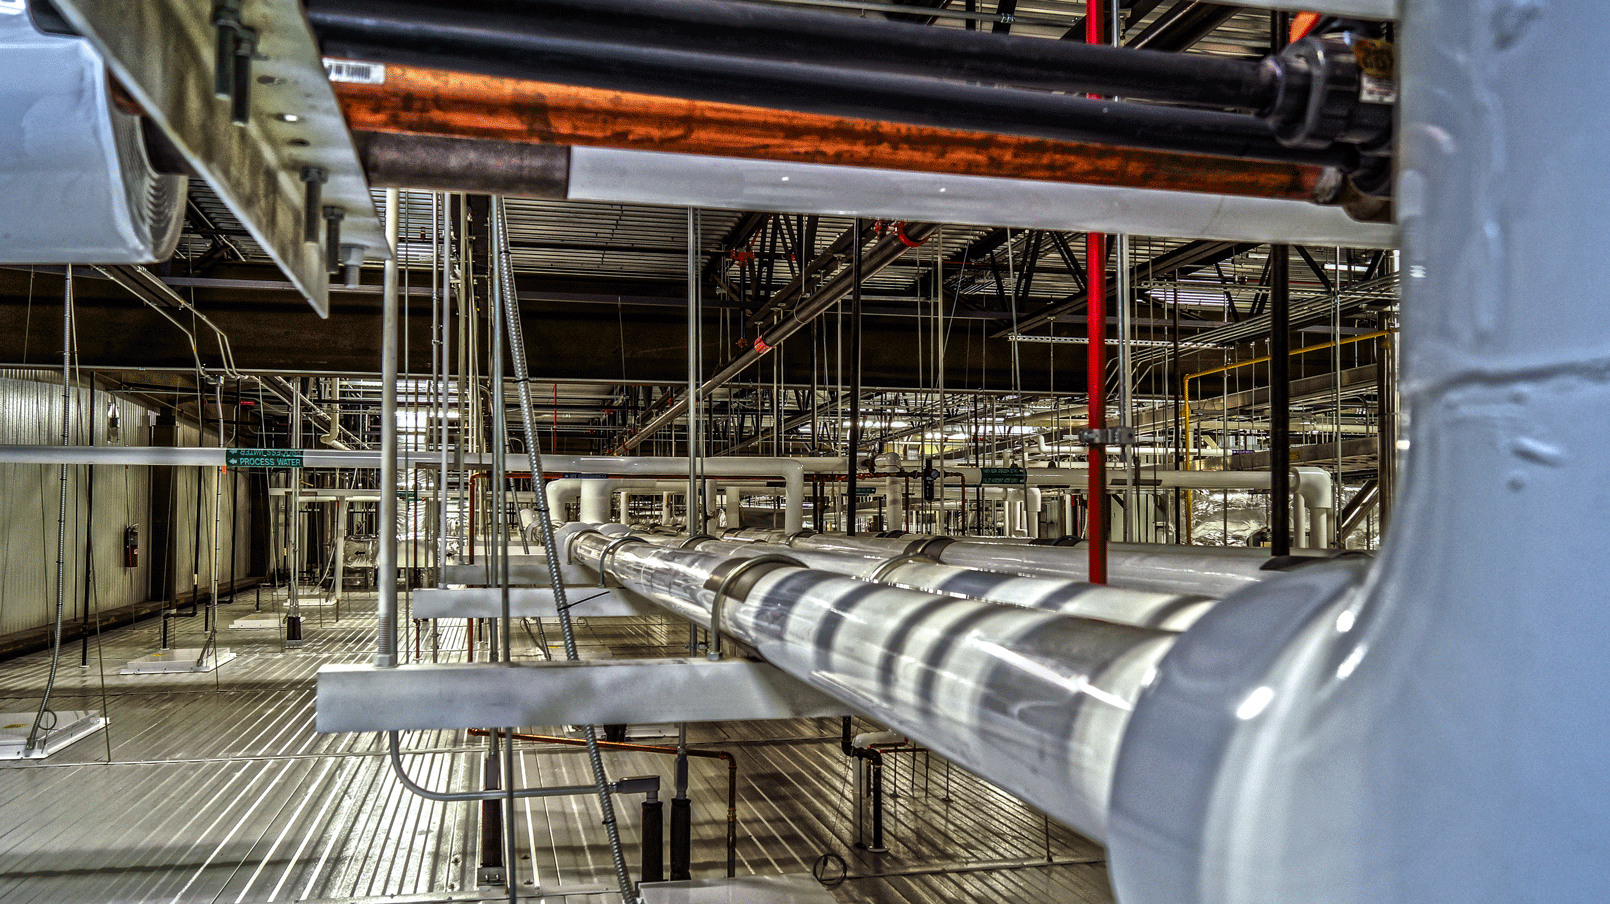 Sheetz Manufacturing, Distribution and Warehouse Facility